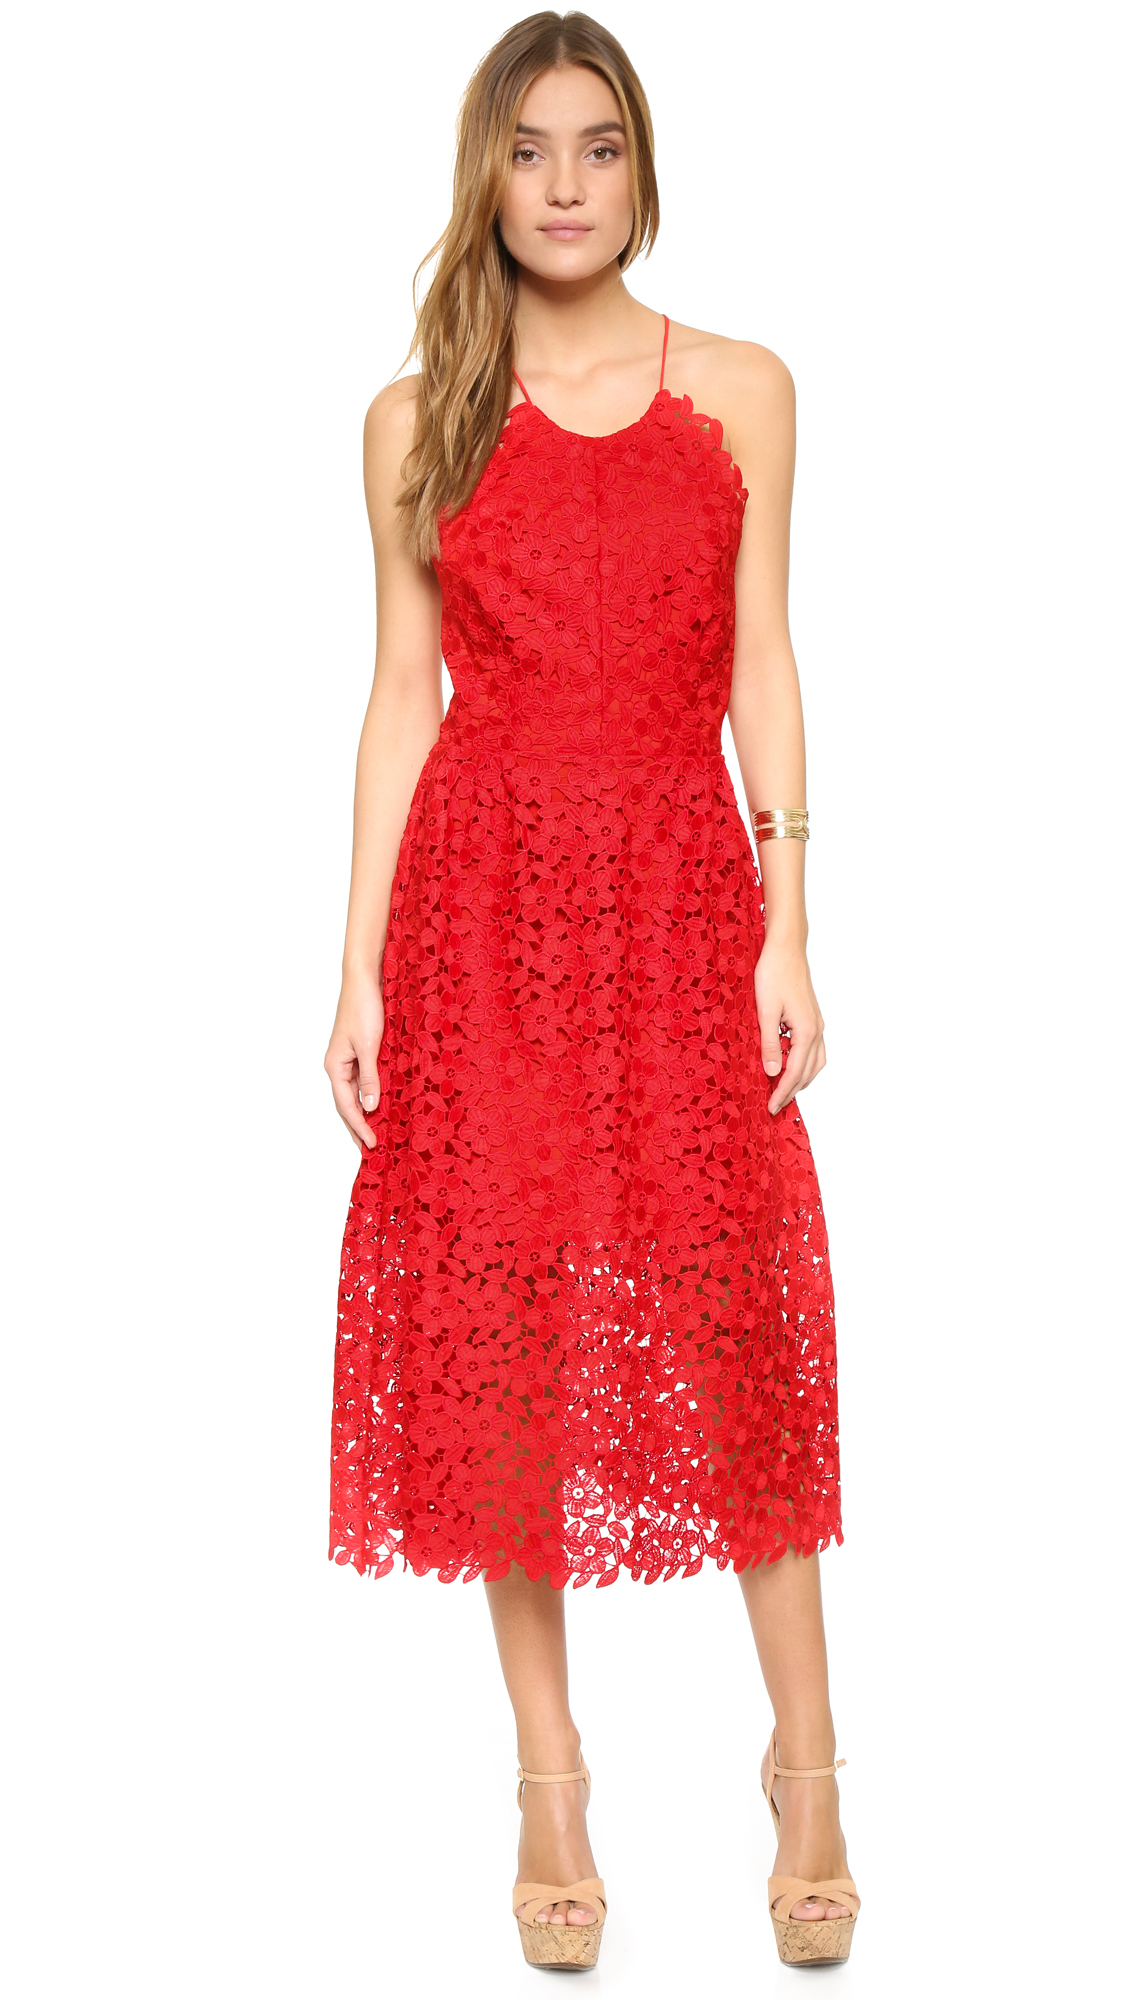 Cynthia rowley Lace Back Dress in Red | Lyst